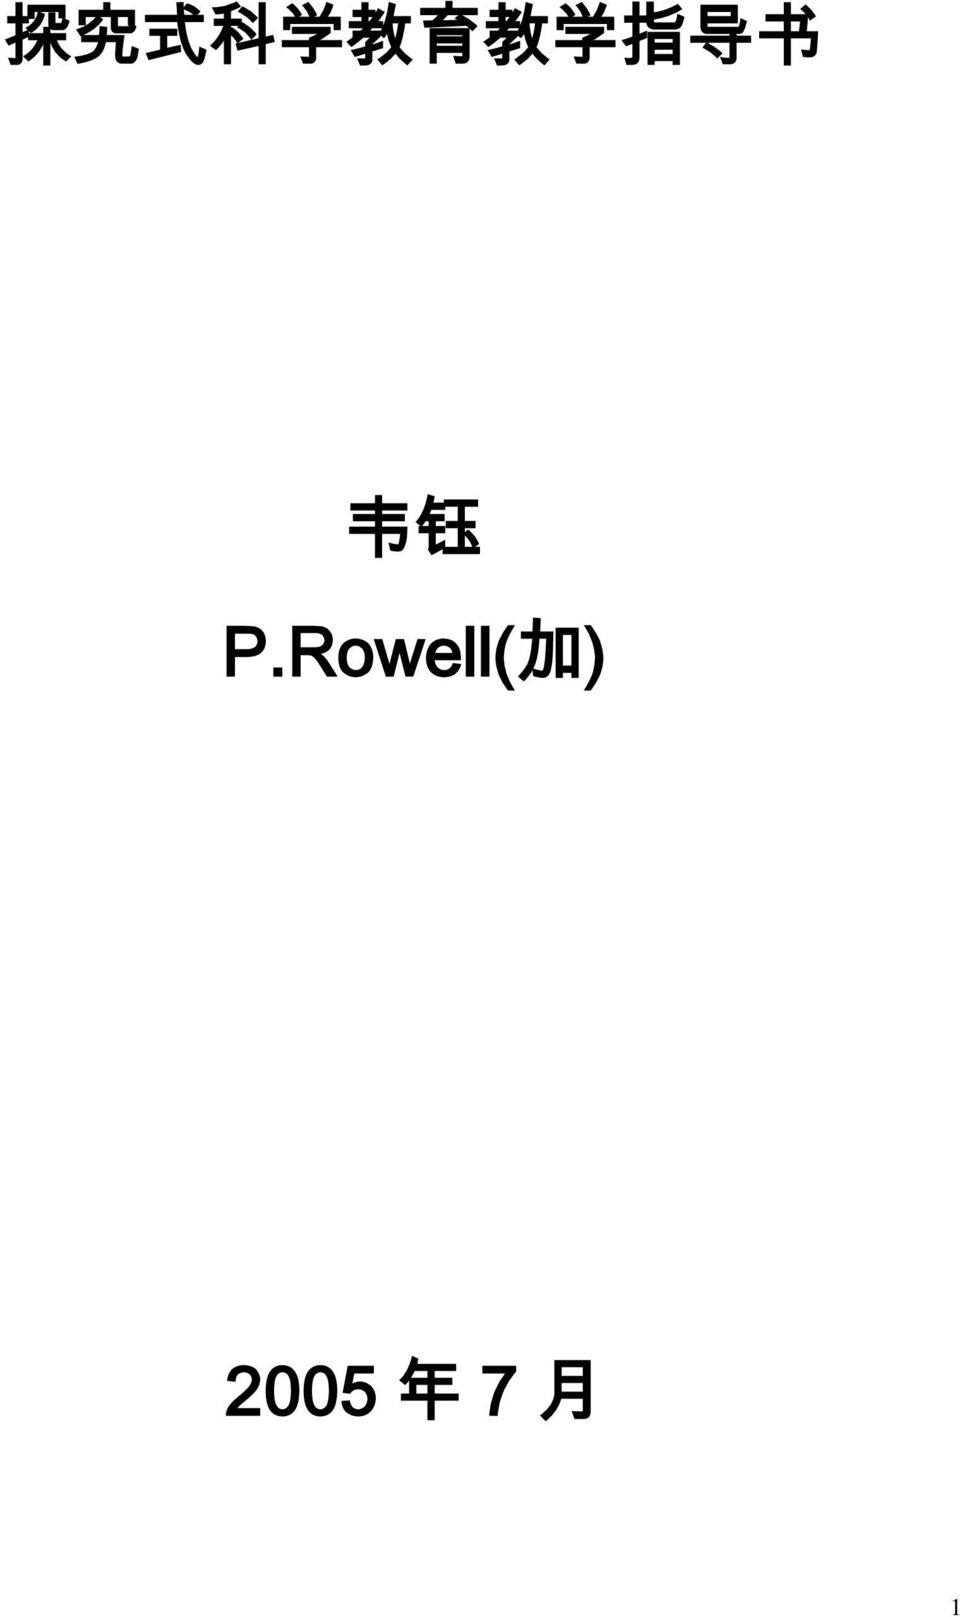 P.Rowell( 加 )